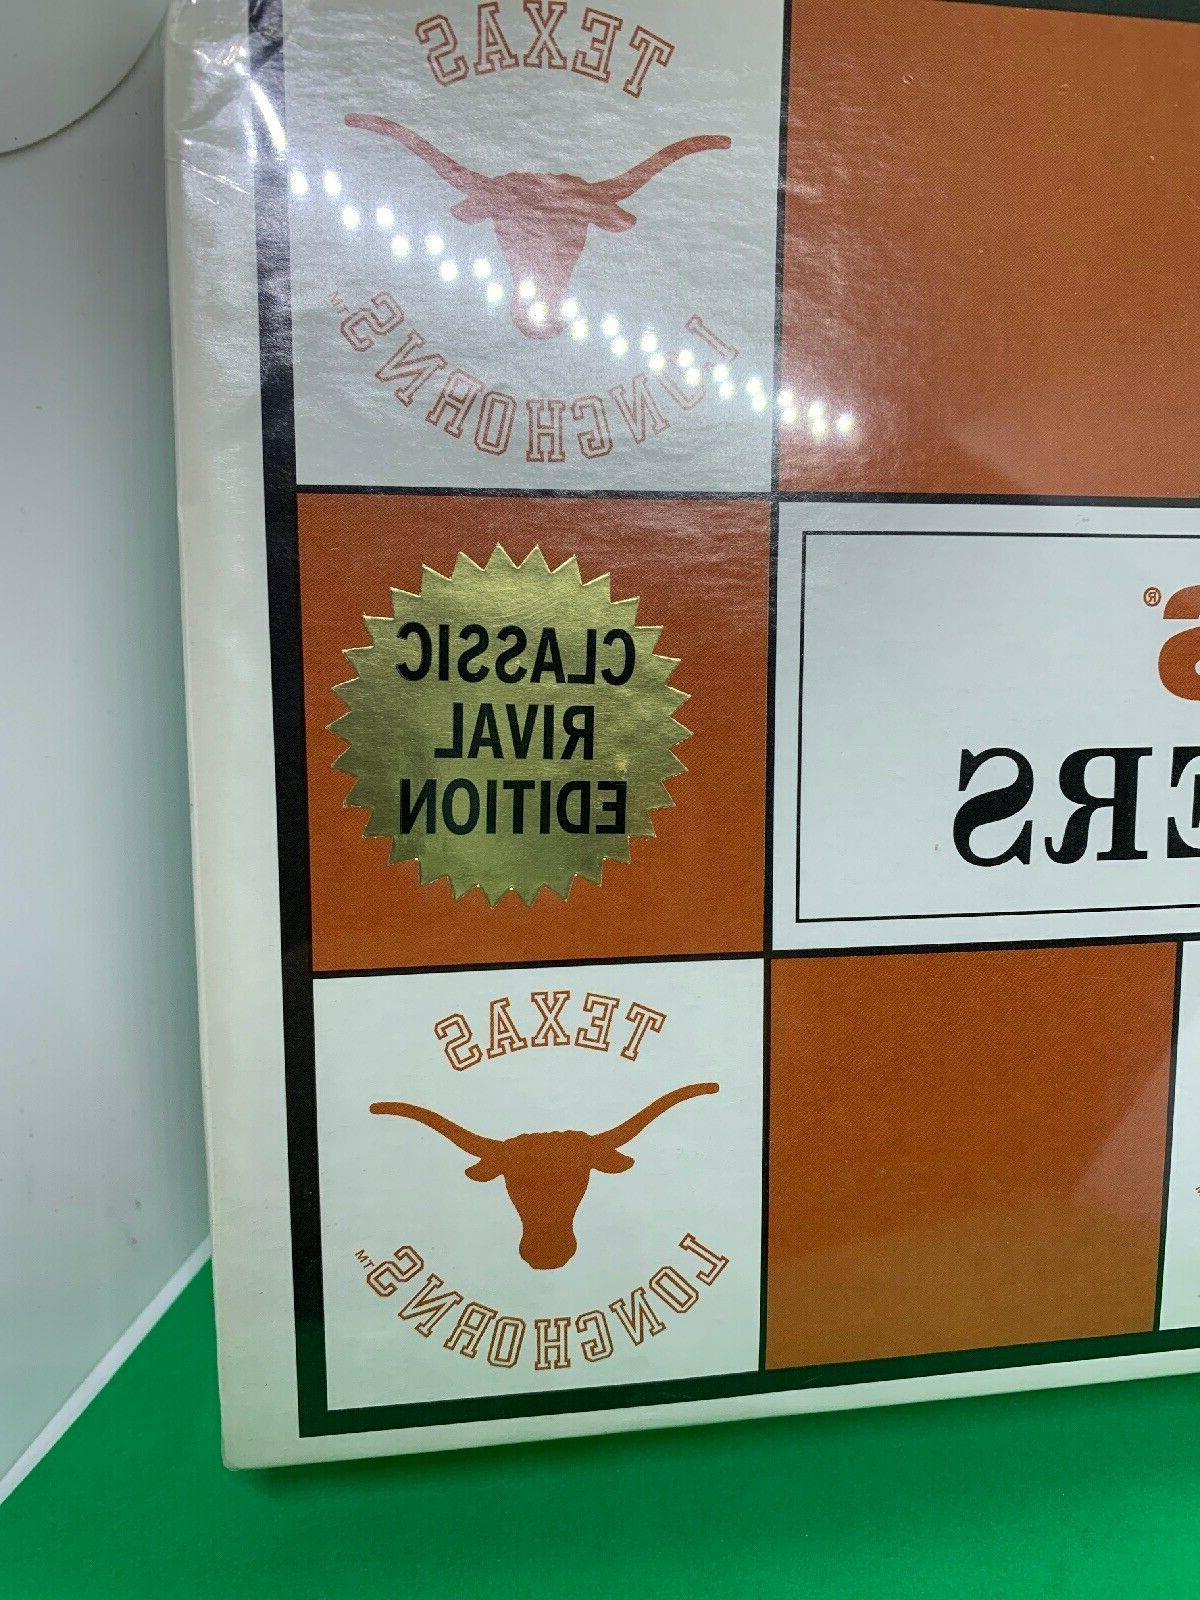 Texas Longhorns Classic Rival Edition Checkers